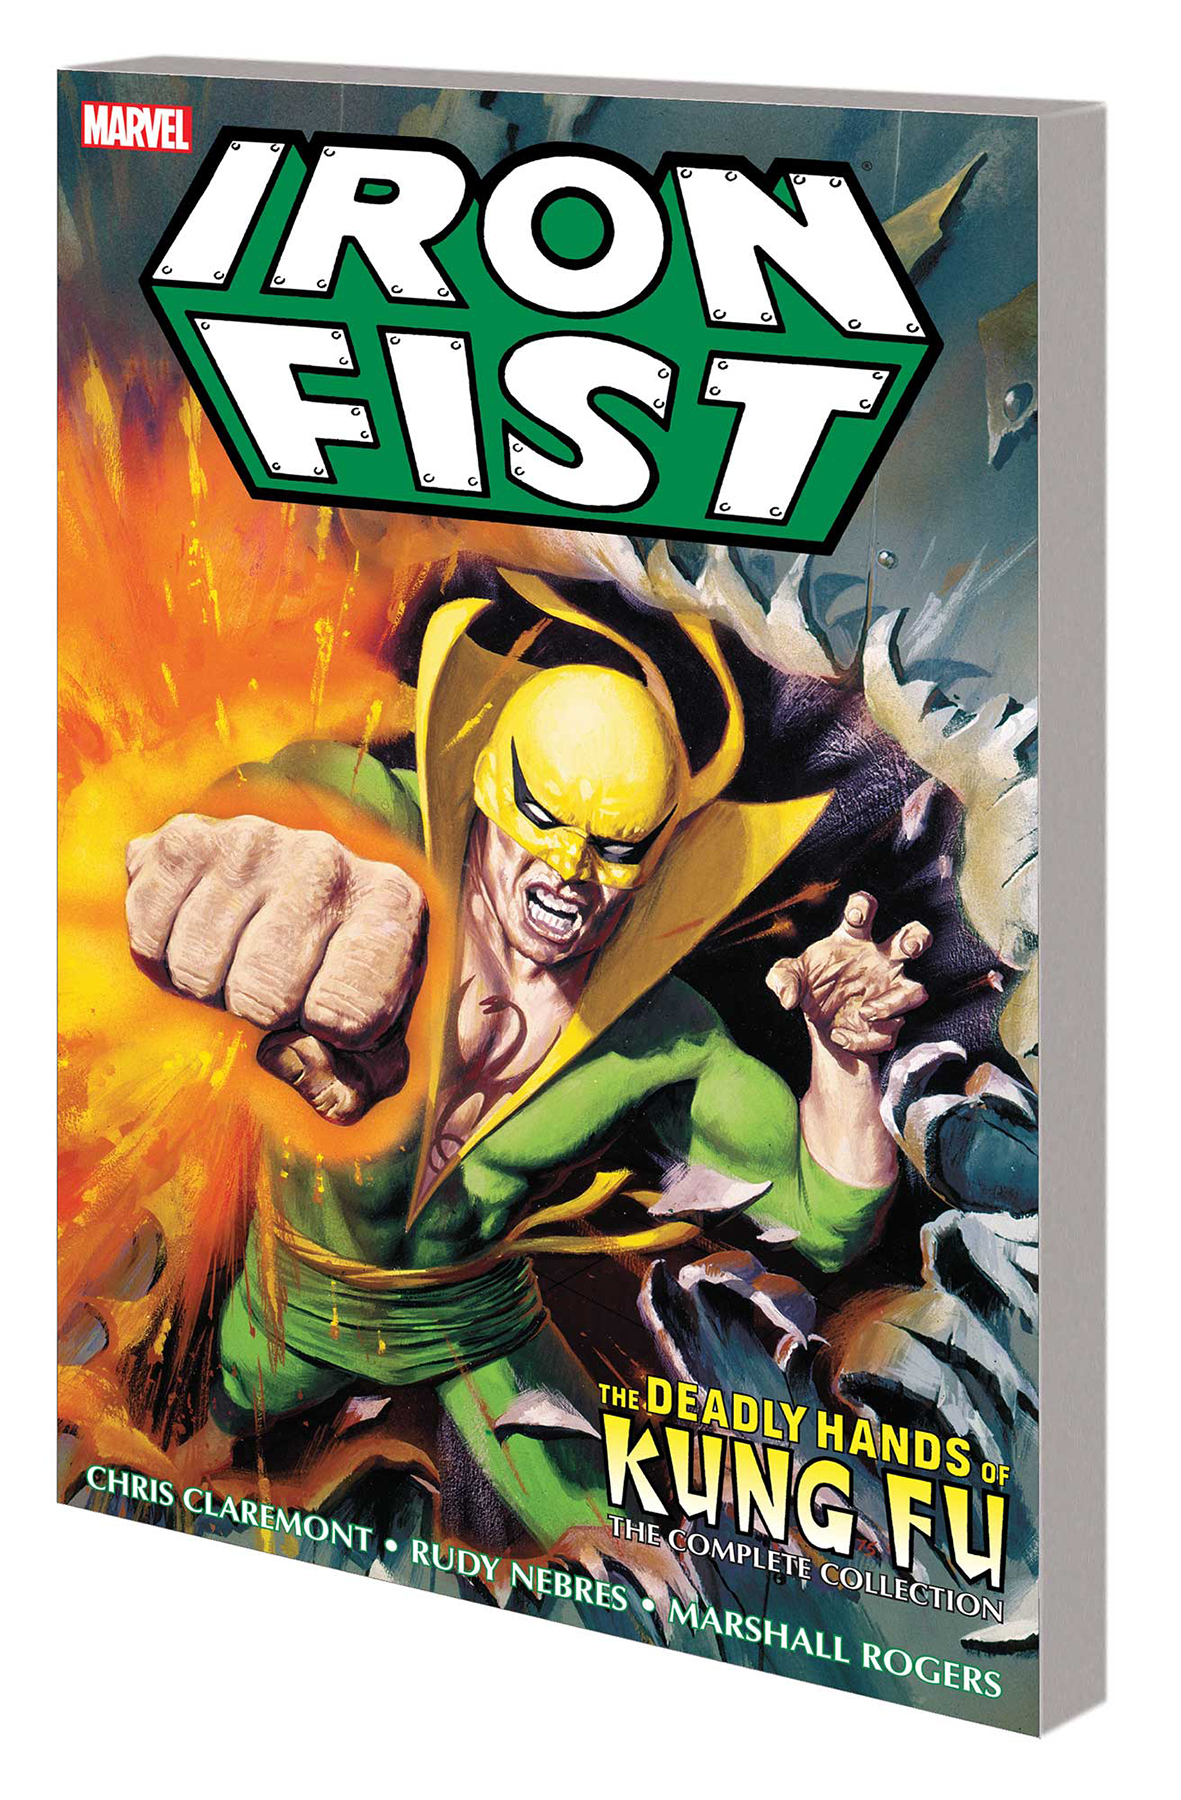 IRON FIST DEADLY HANDS KUNG FU TP COMPLETE COLLECTION (MR)